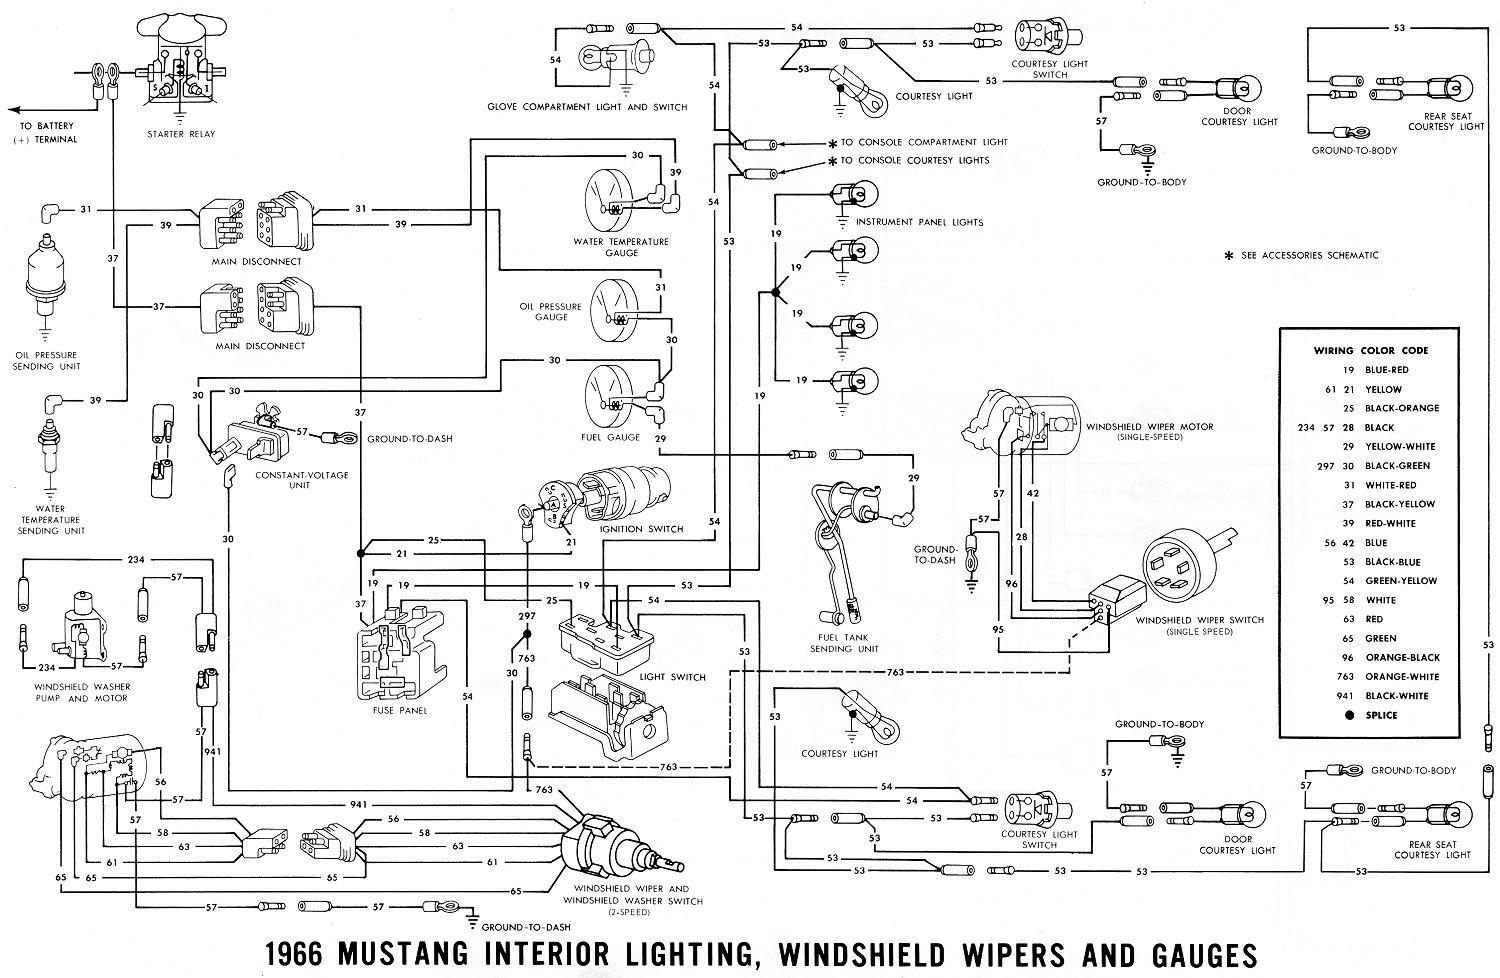 hight resolution of 1966 mustang alternator wiring diagram lelu 39s 66 wiring diagrams 1966 mustang alternator wiring diagram lelu 39s 66